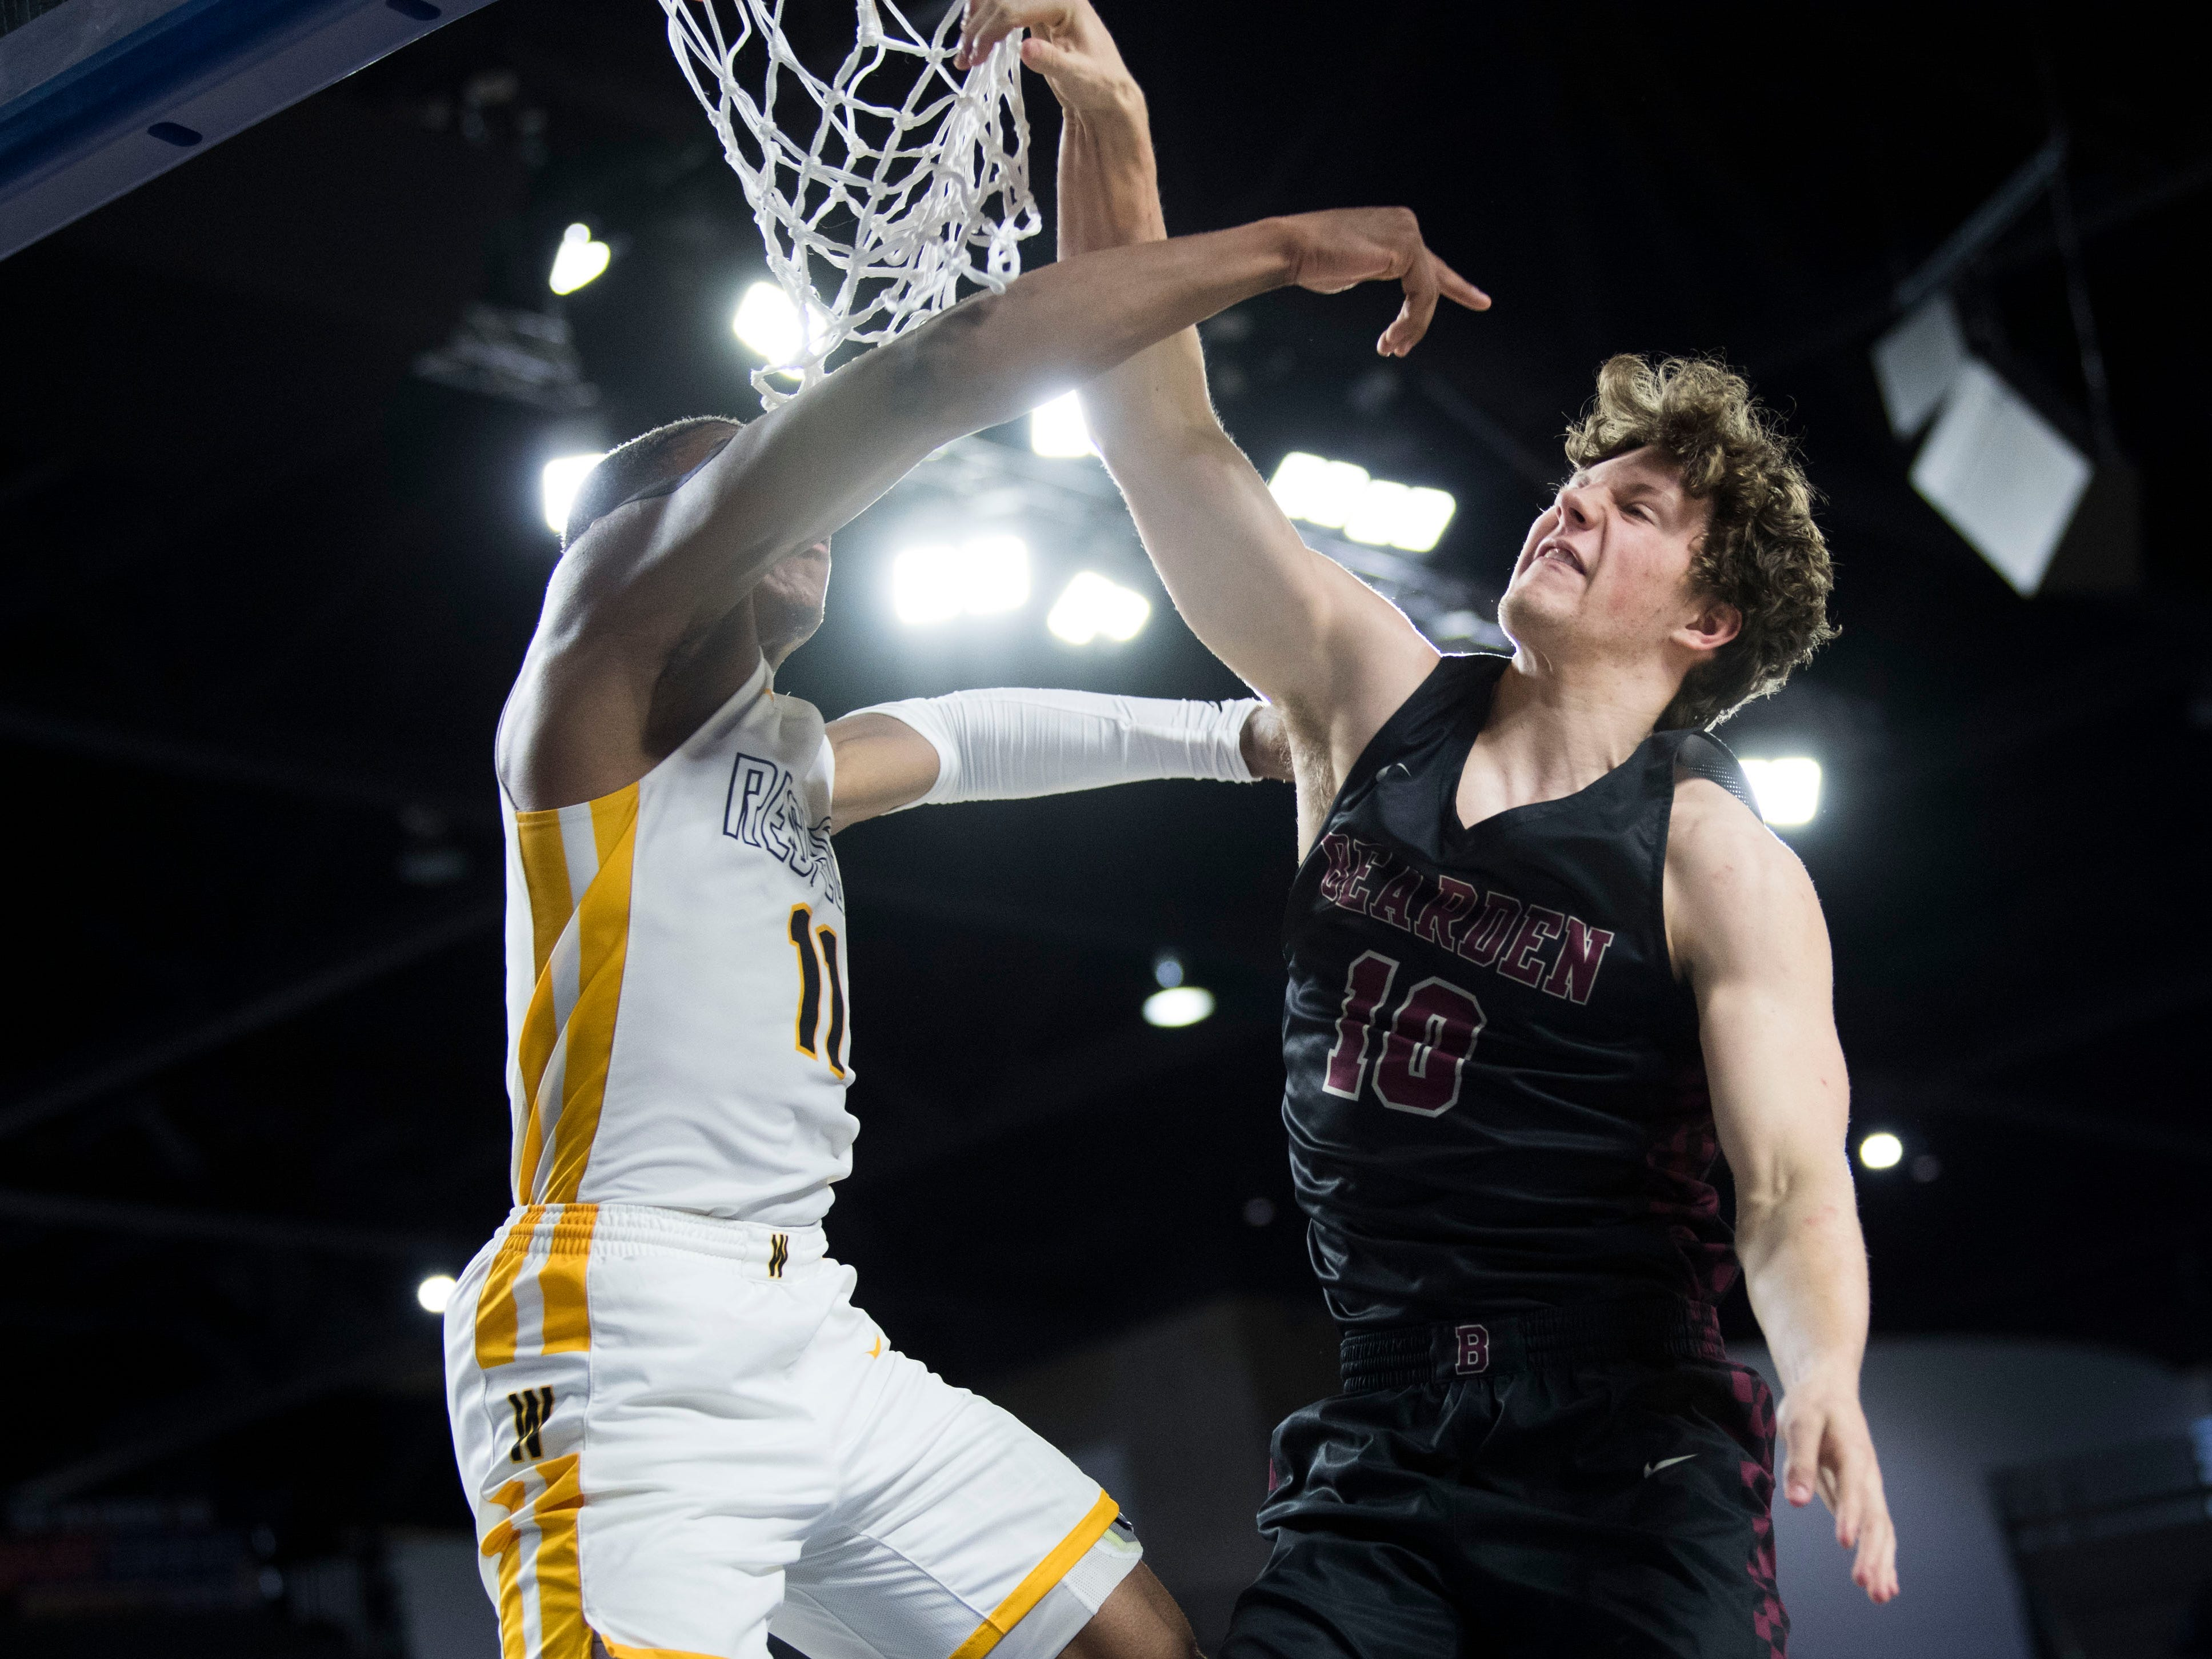 Bearden's Tyler Nordin (10) takes a shot while fouled by Whitehaven's Matthew Murrell (11)during a TSSAA AAA state semifinal game between Whitehaven and Bearden at the Murphy Center in Murfreesboro, Friday, March 15, 2019. Bearden defeated Whitehaven 76-60.